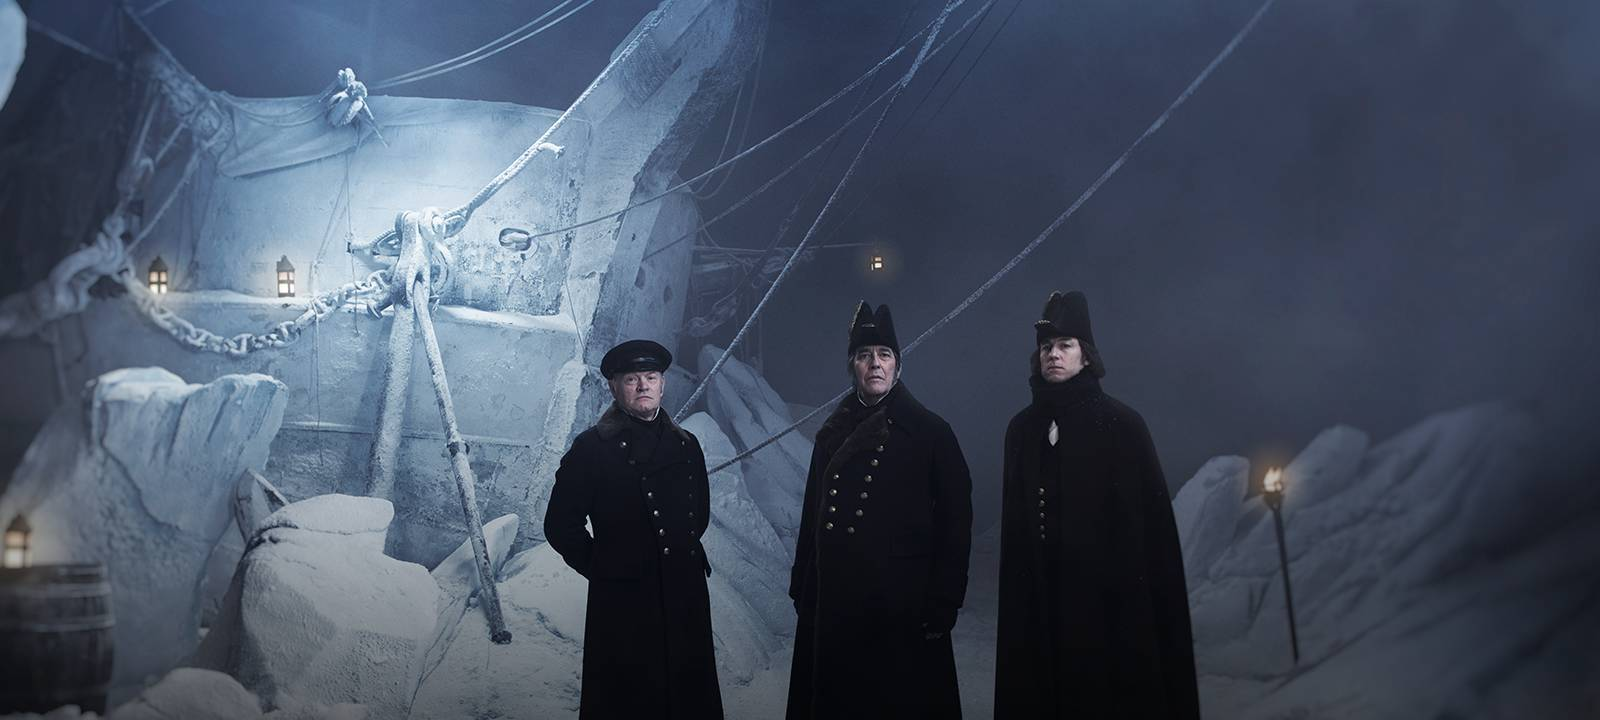 THE TERROR - Serie  - Jared Harris , Ciarán Hinds y Tobias Menzies